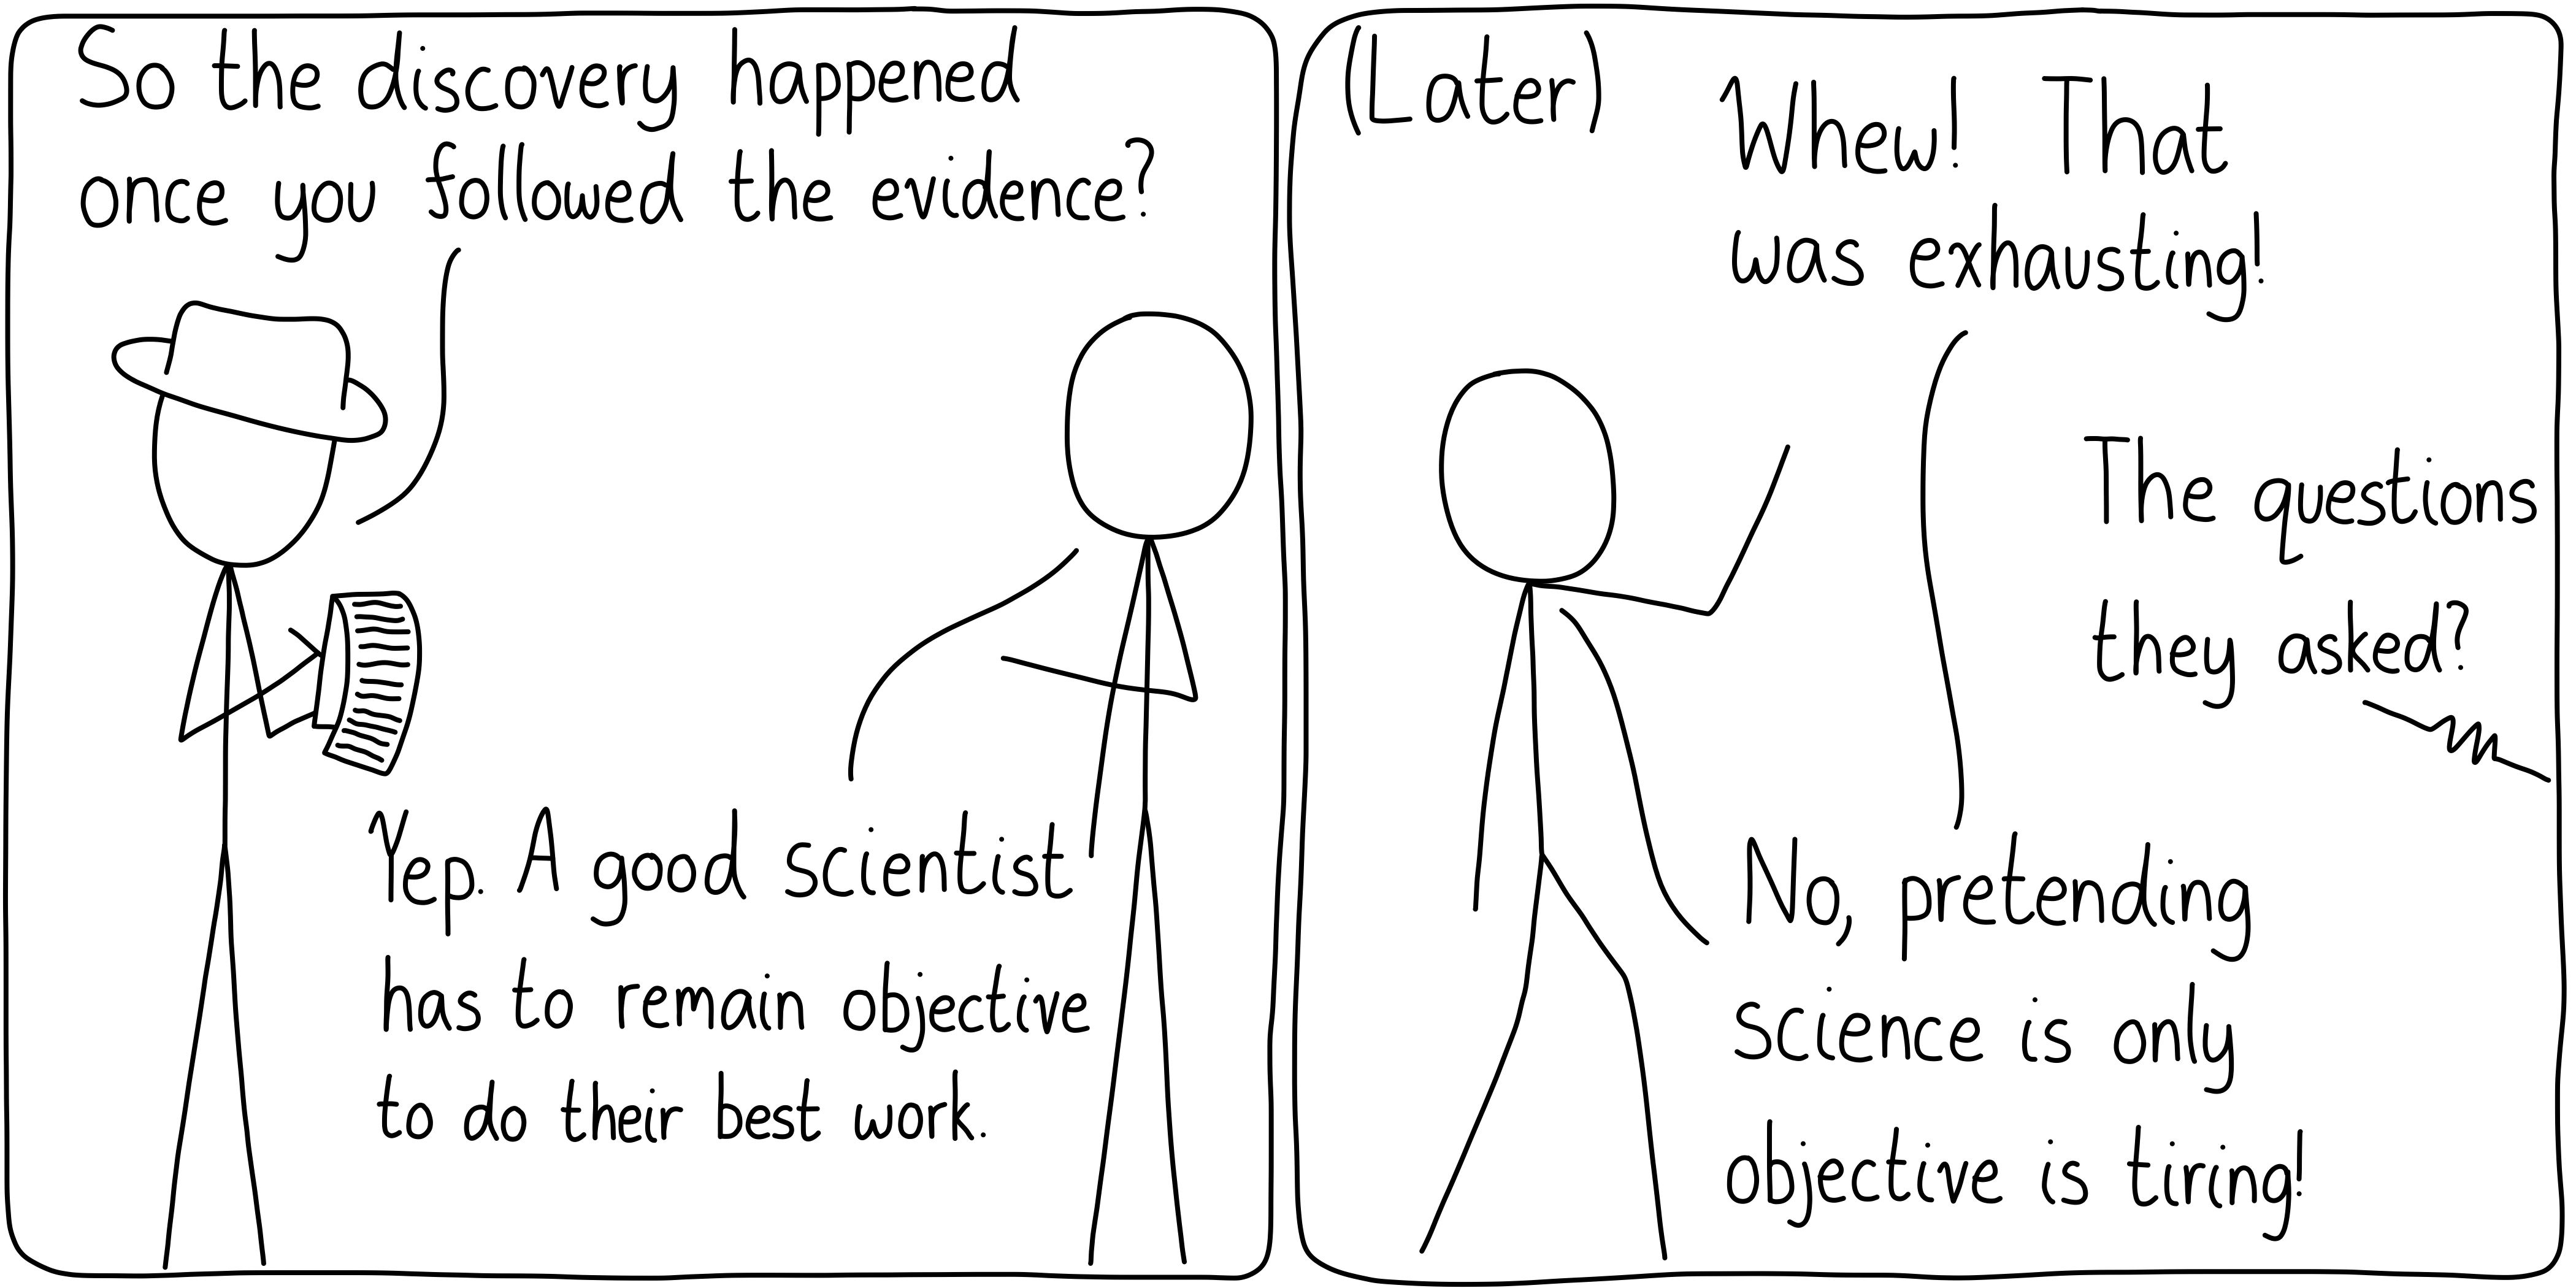 Thinking that scientists are all objective is a convenient fiction.